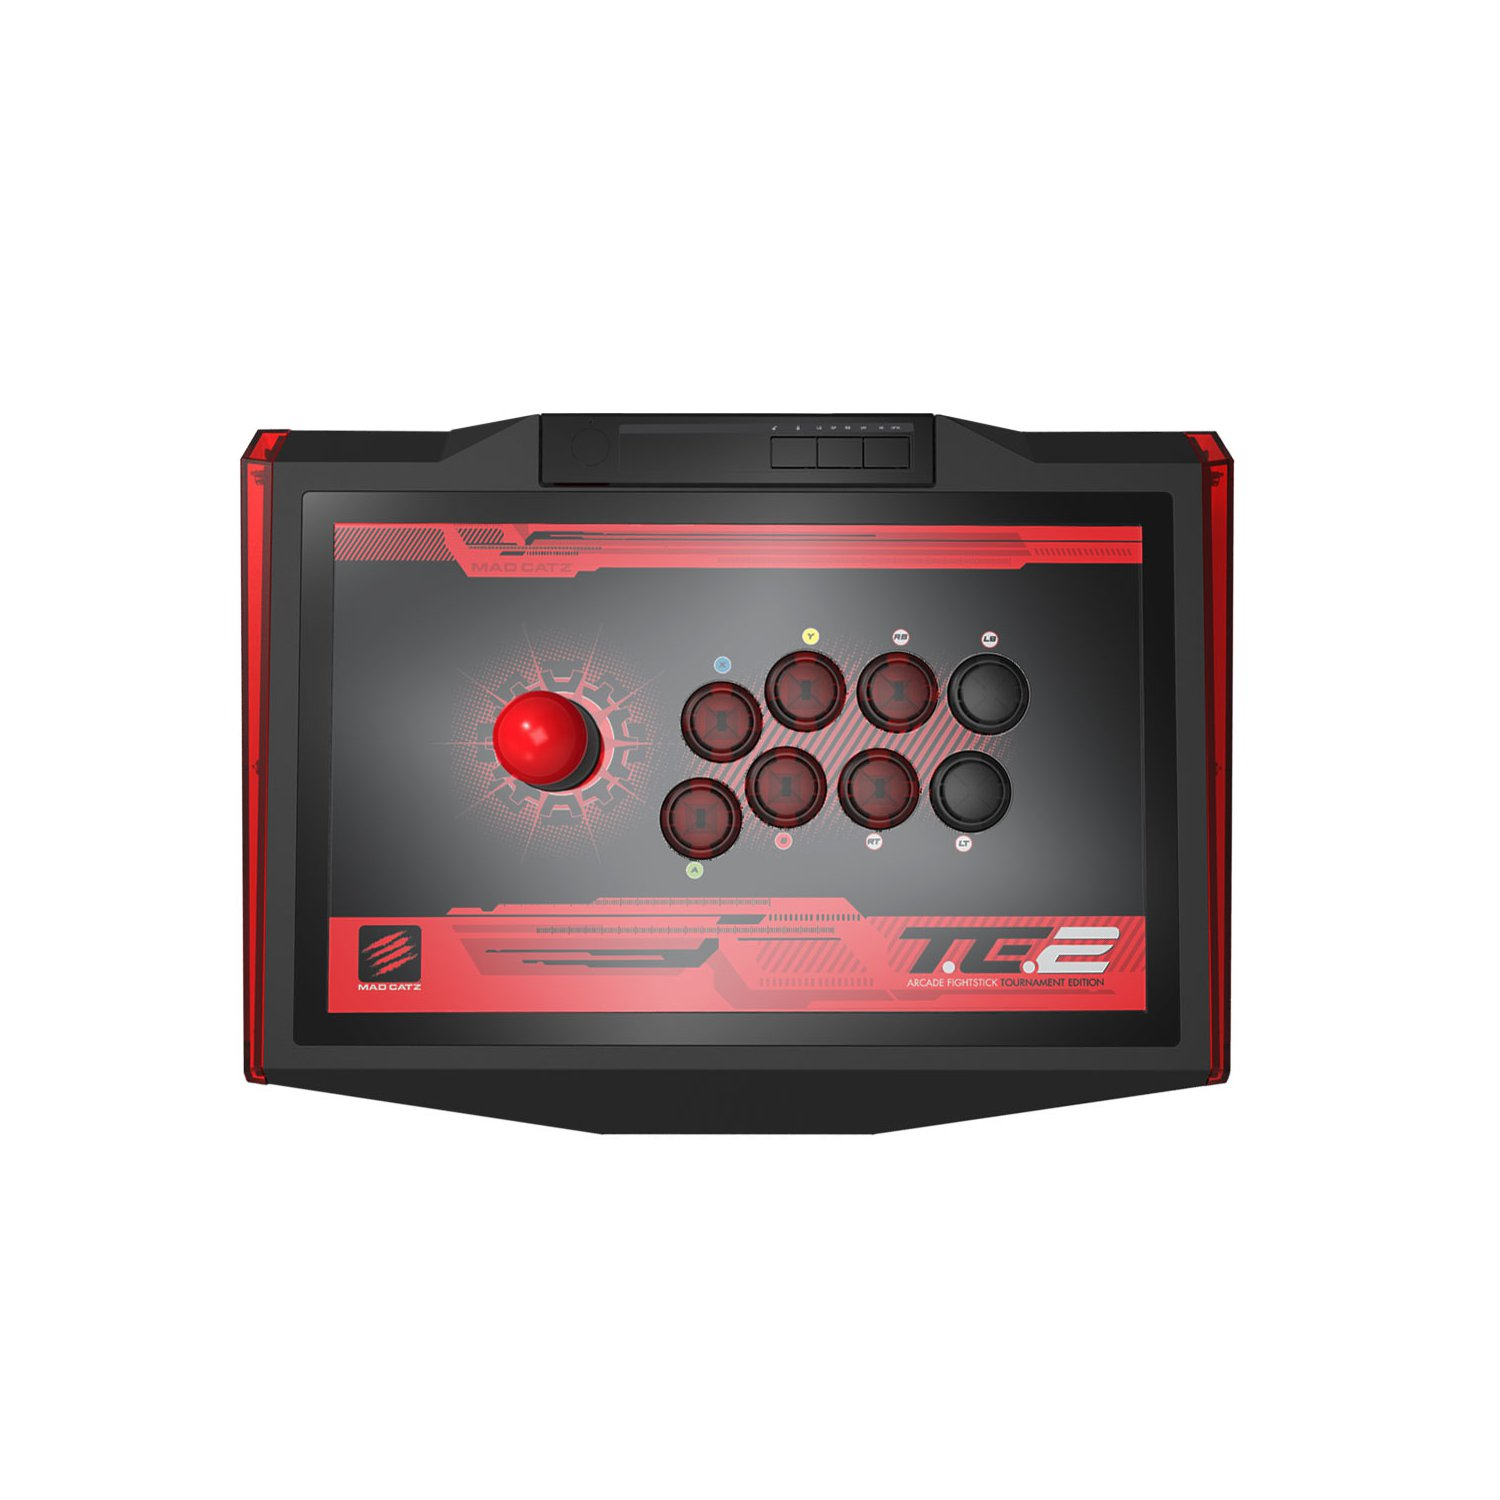 MadCatz Arcade Fightstick Tournament Edition 2 Announced For Xbox One #27216